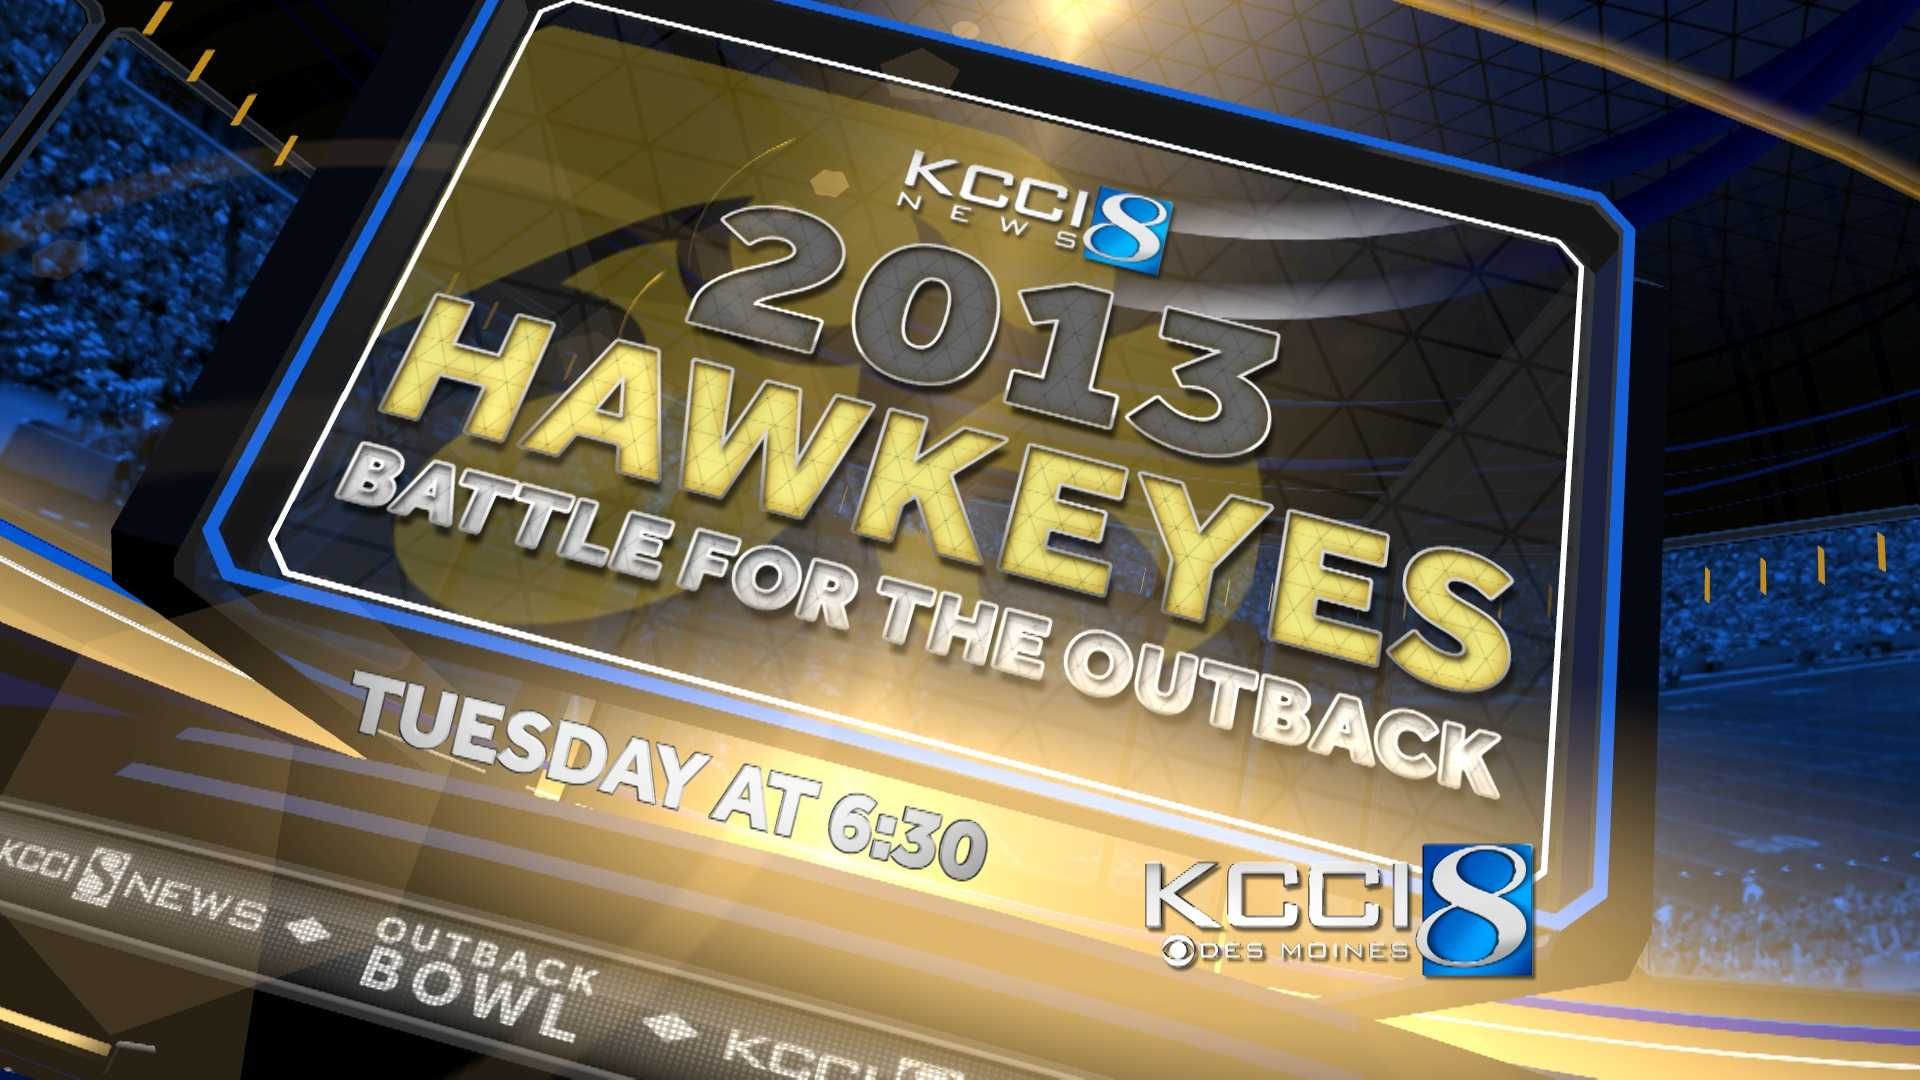 hawkeye kcci special new graphic